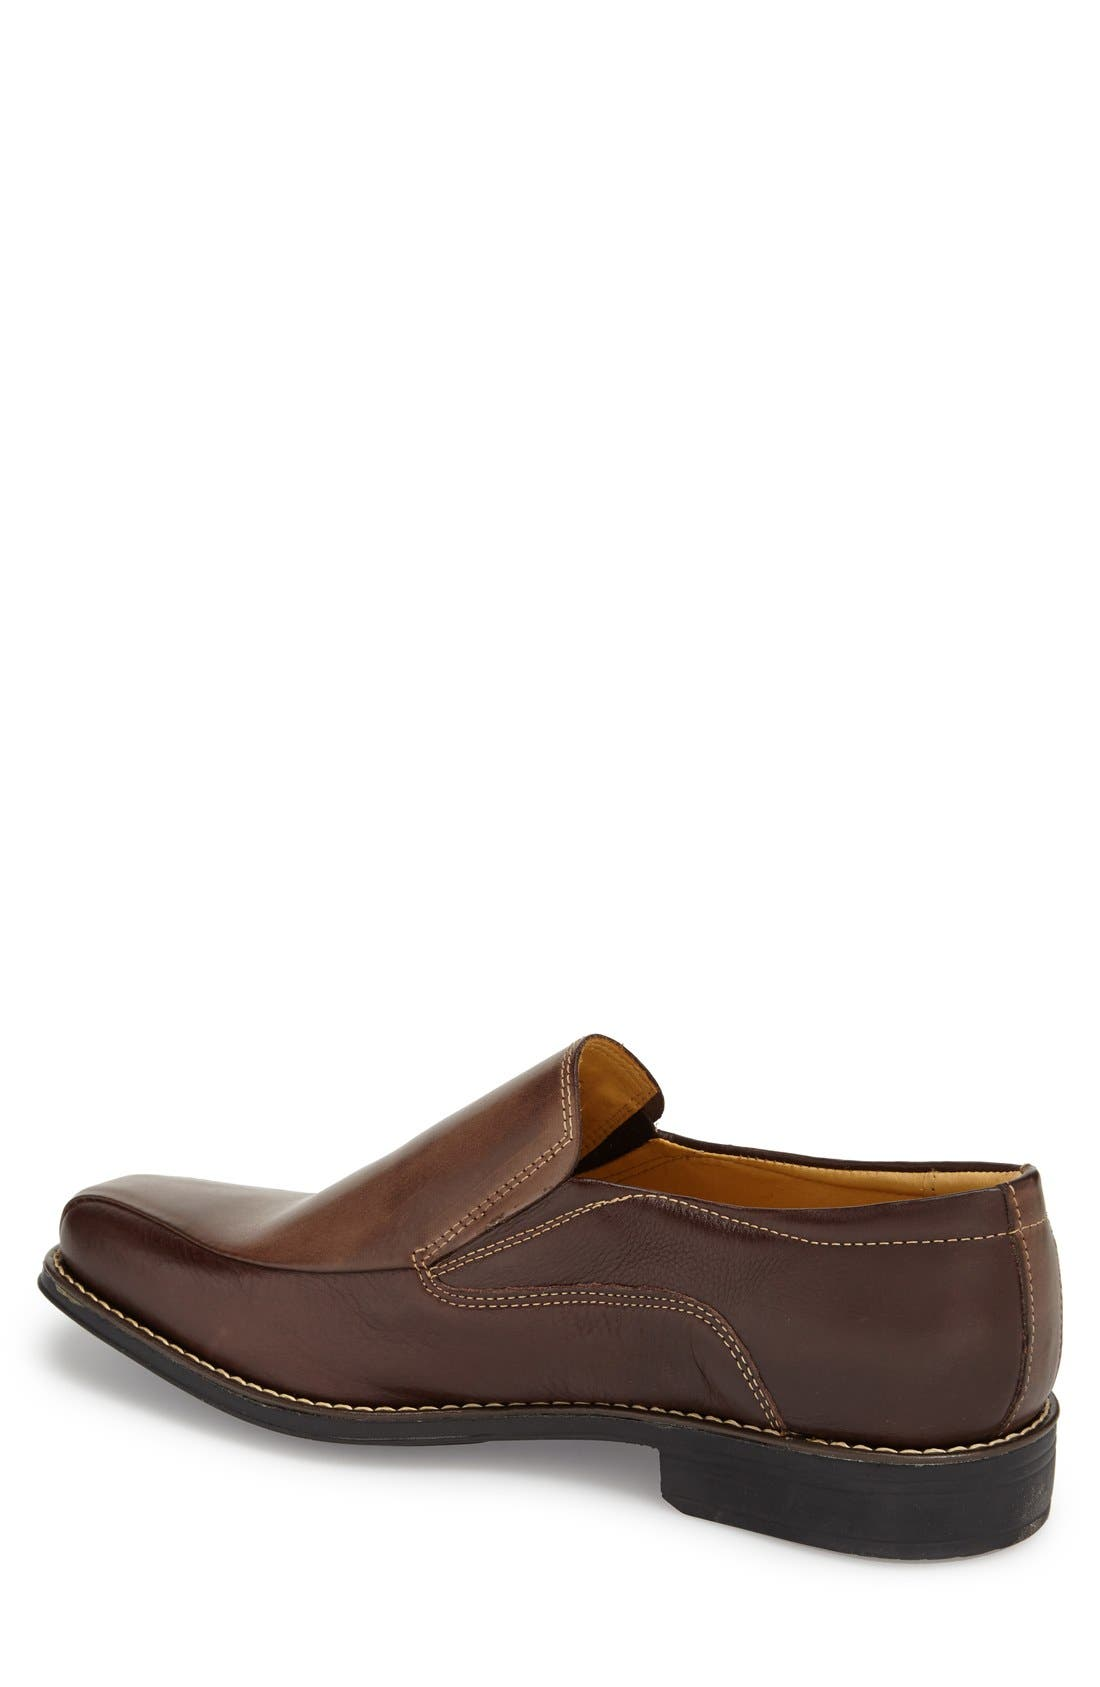 'Jacobs Venetian' Slip-On,                             Alternate thumbnail 2, color,                             Brown/ Brown